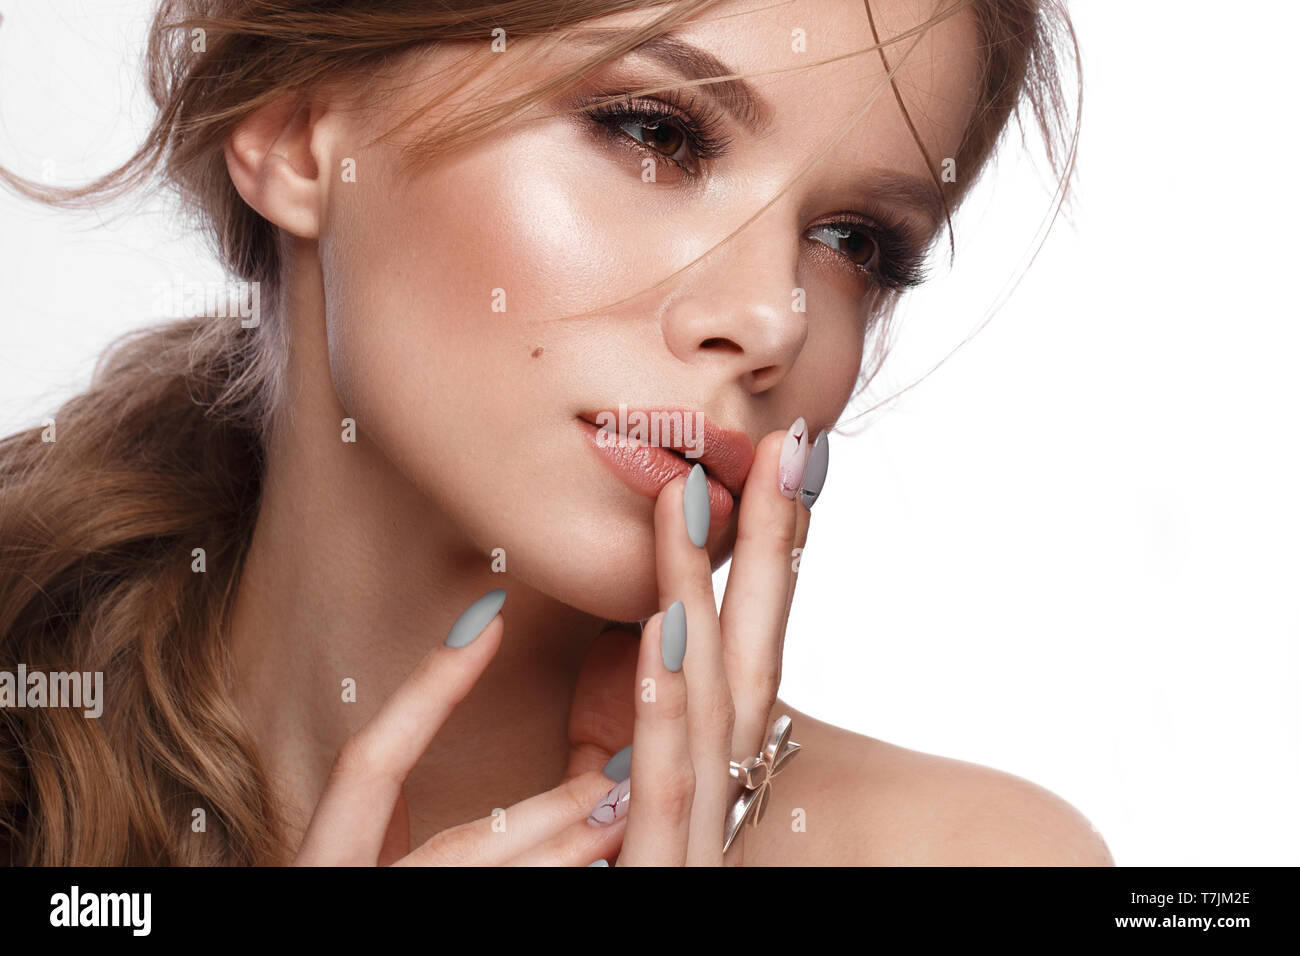 Pretty Girl With Easy Hairstyle Classic Makeup Nude Lips And Manicure Design With Jar Of Nail Polish In Her Hands Beauty Face Art Nails Stock Photo Alamy